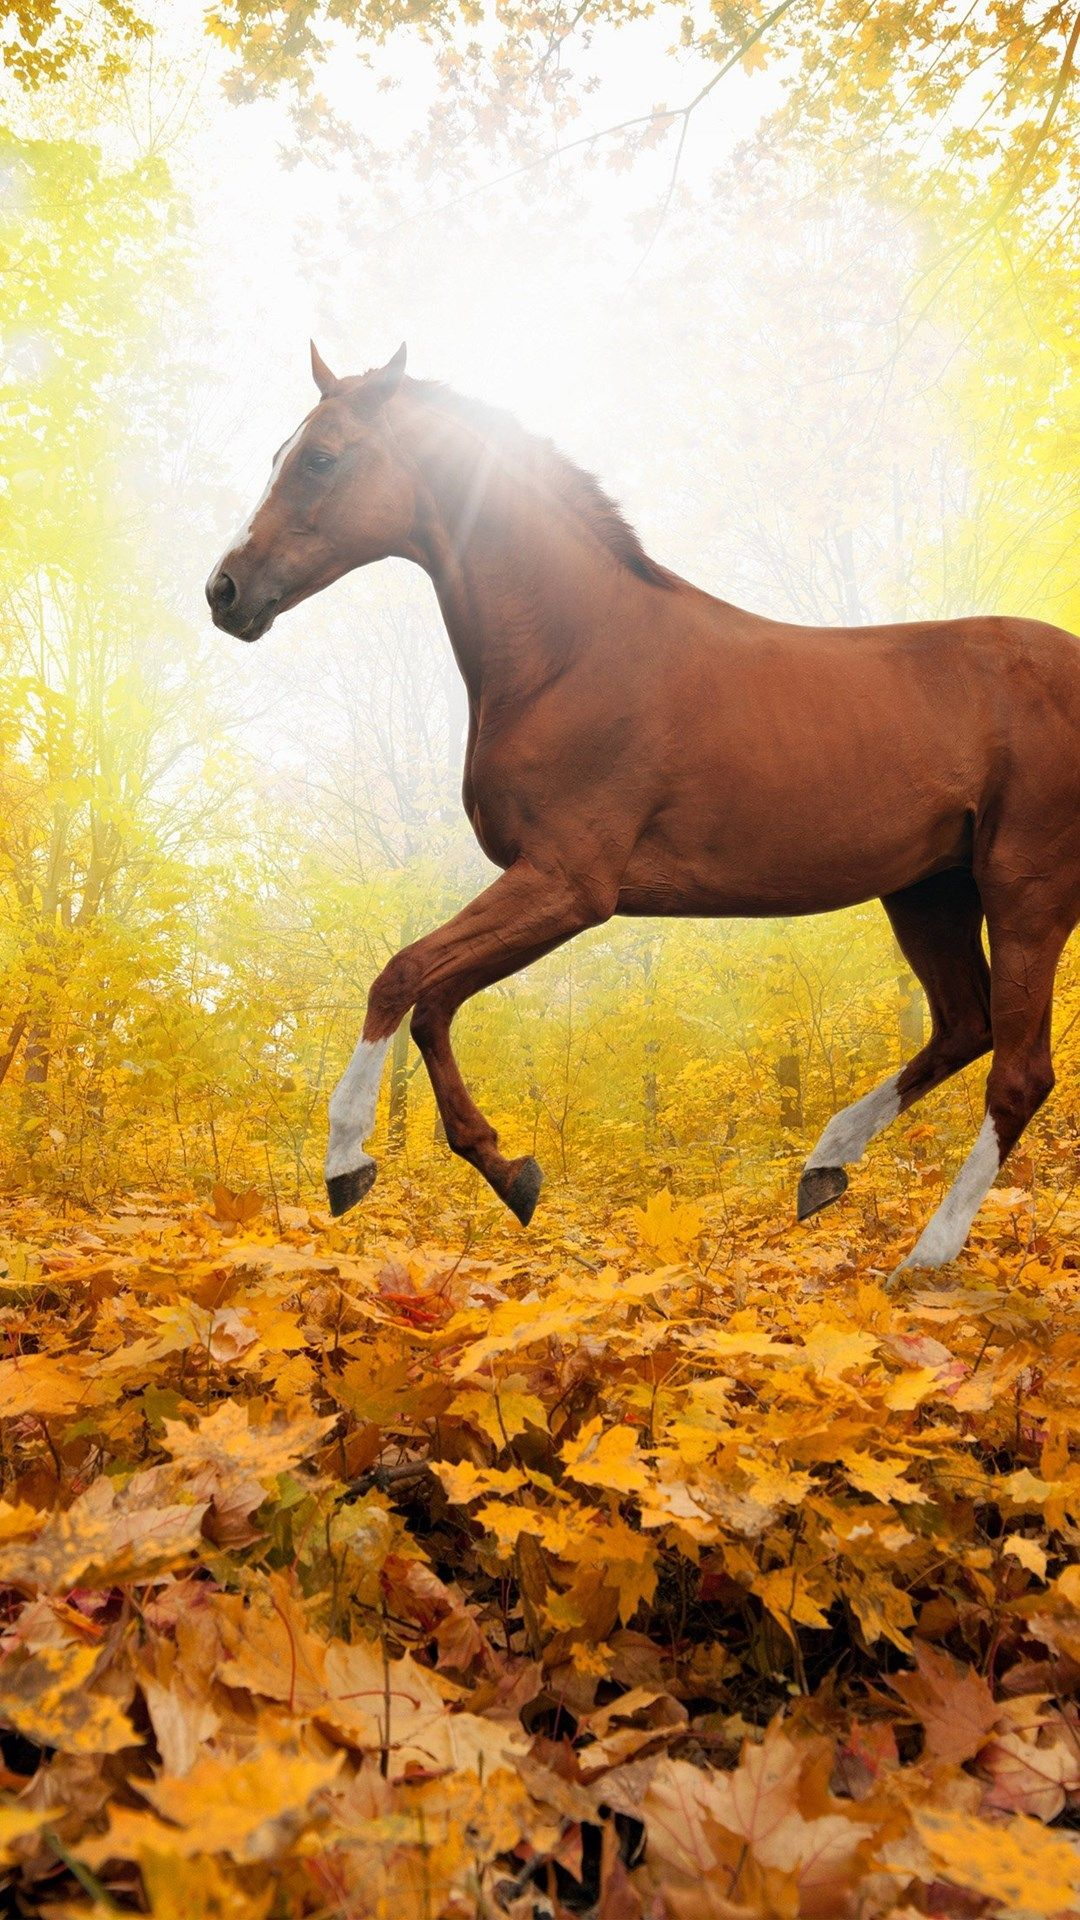 Download Wallpaper Horse Ipod Touch - 53ba2f4b0bbc7e1026db6b6388d90c6b  Gallery_53276.jpg